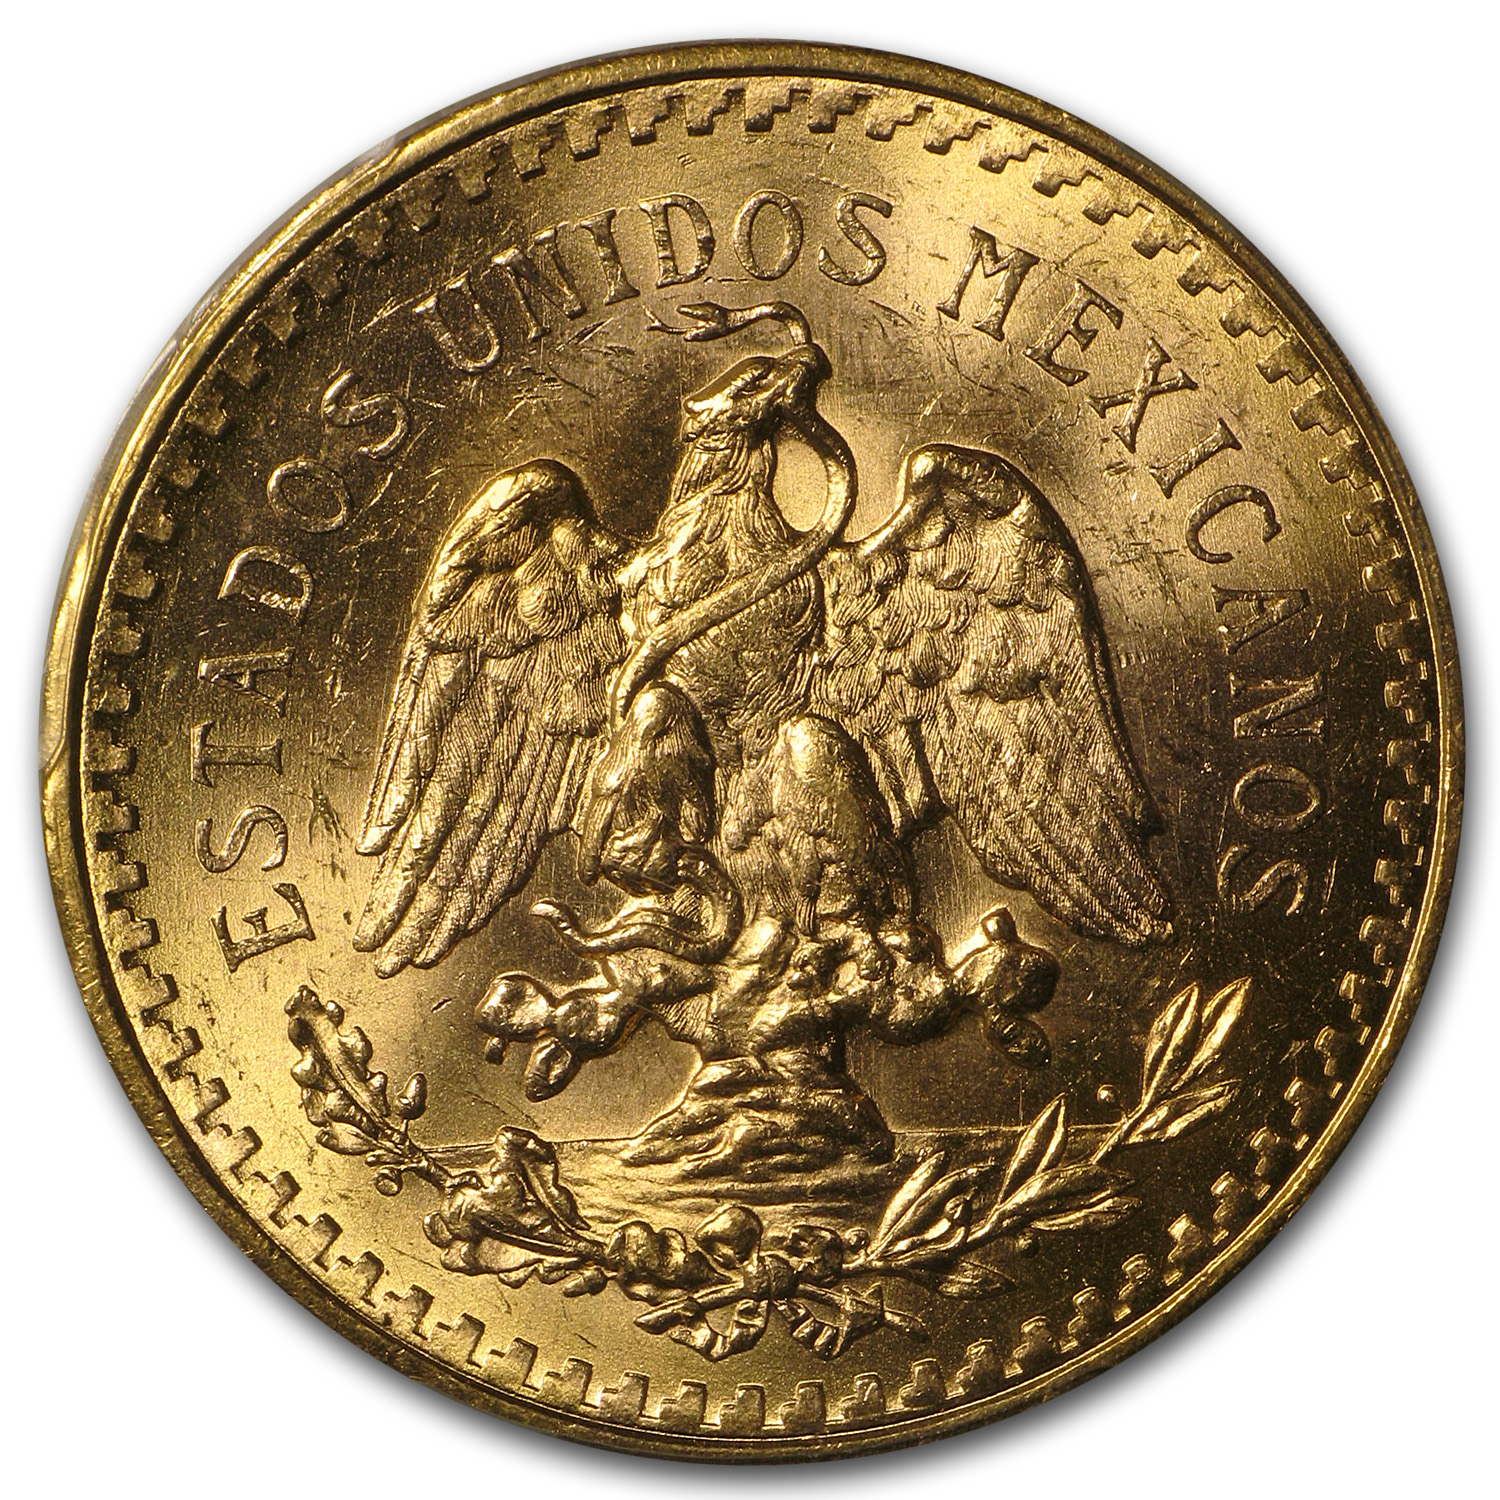 Mexico 1945 50 Pesos Gold Coin - MS-63+ PCGS (Secure Plus!)